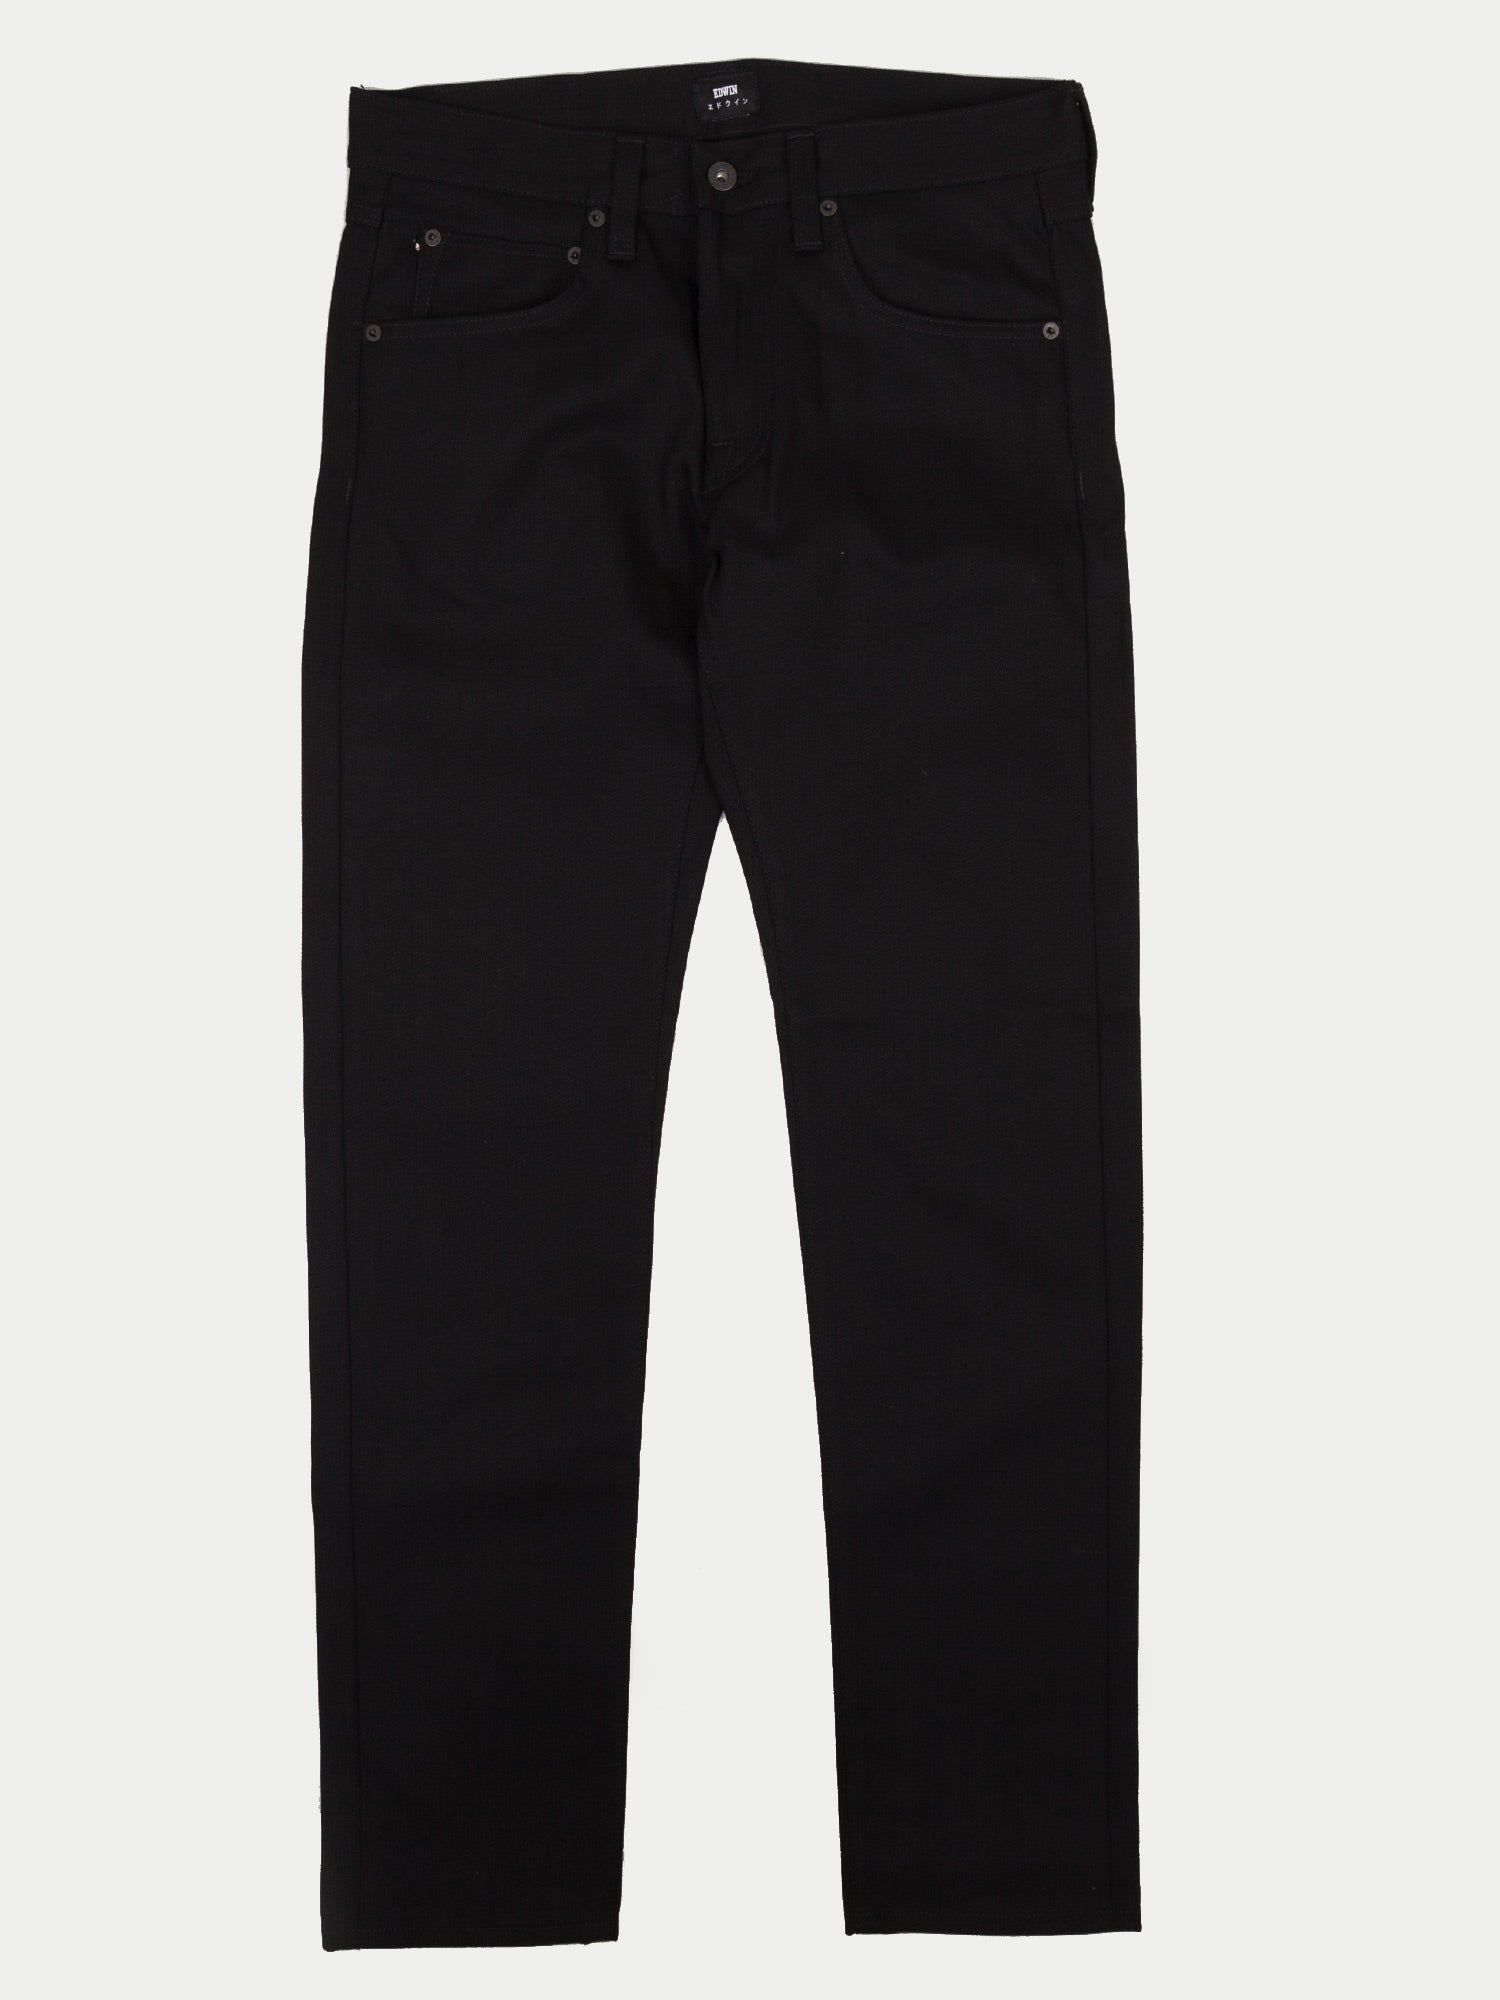 Edwin ED-55 13.5oz Red Selvage Jeans (Black)